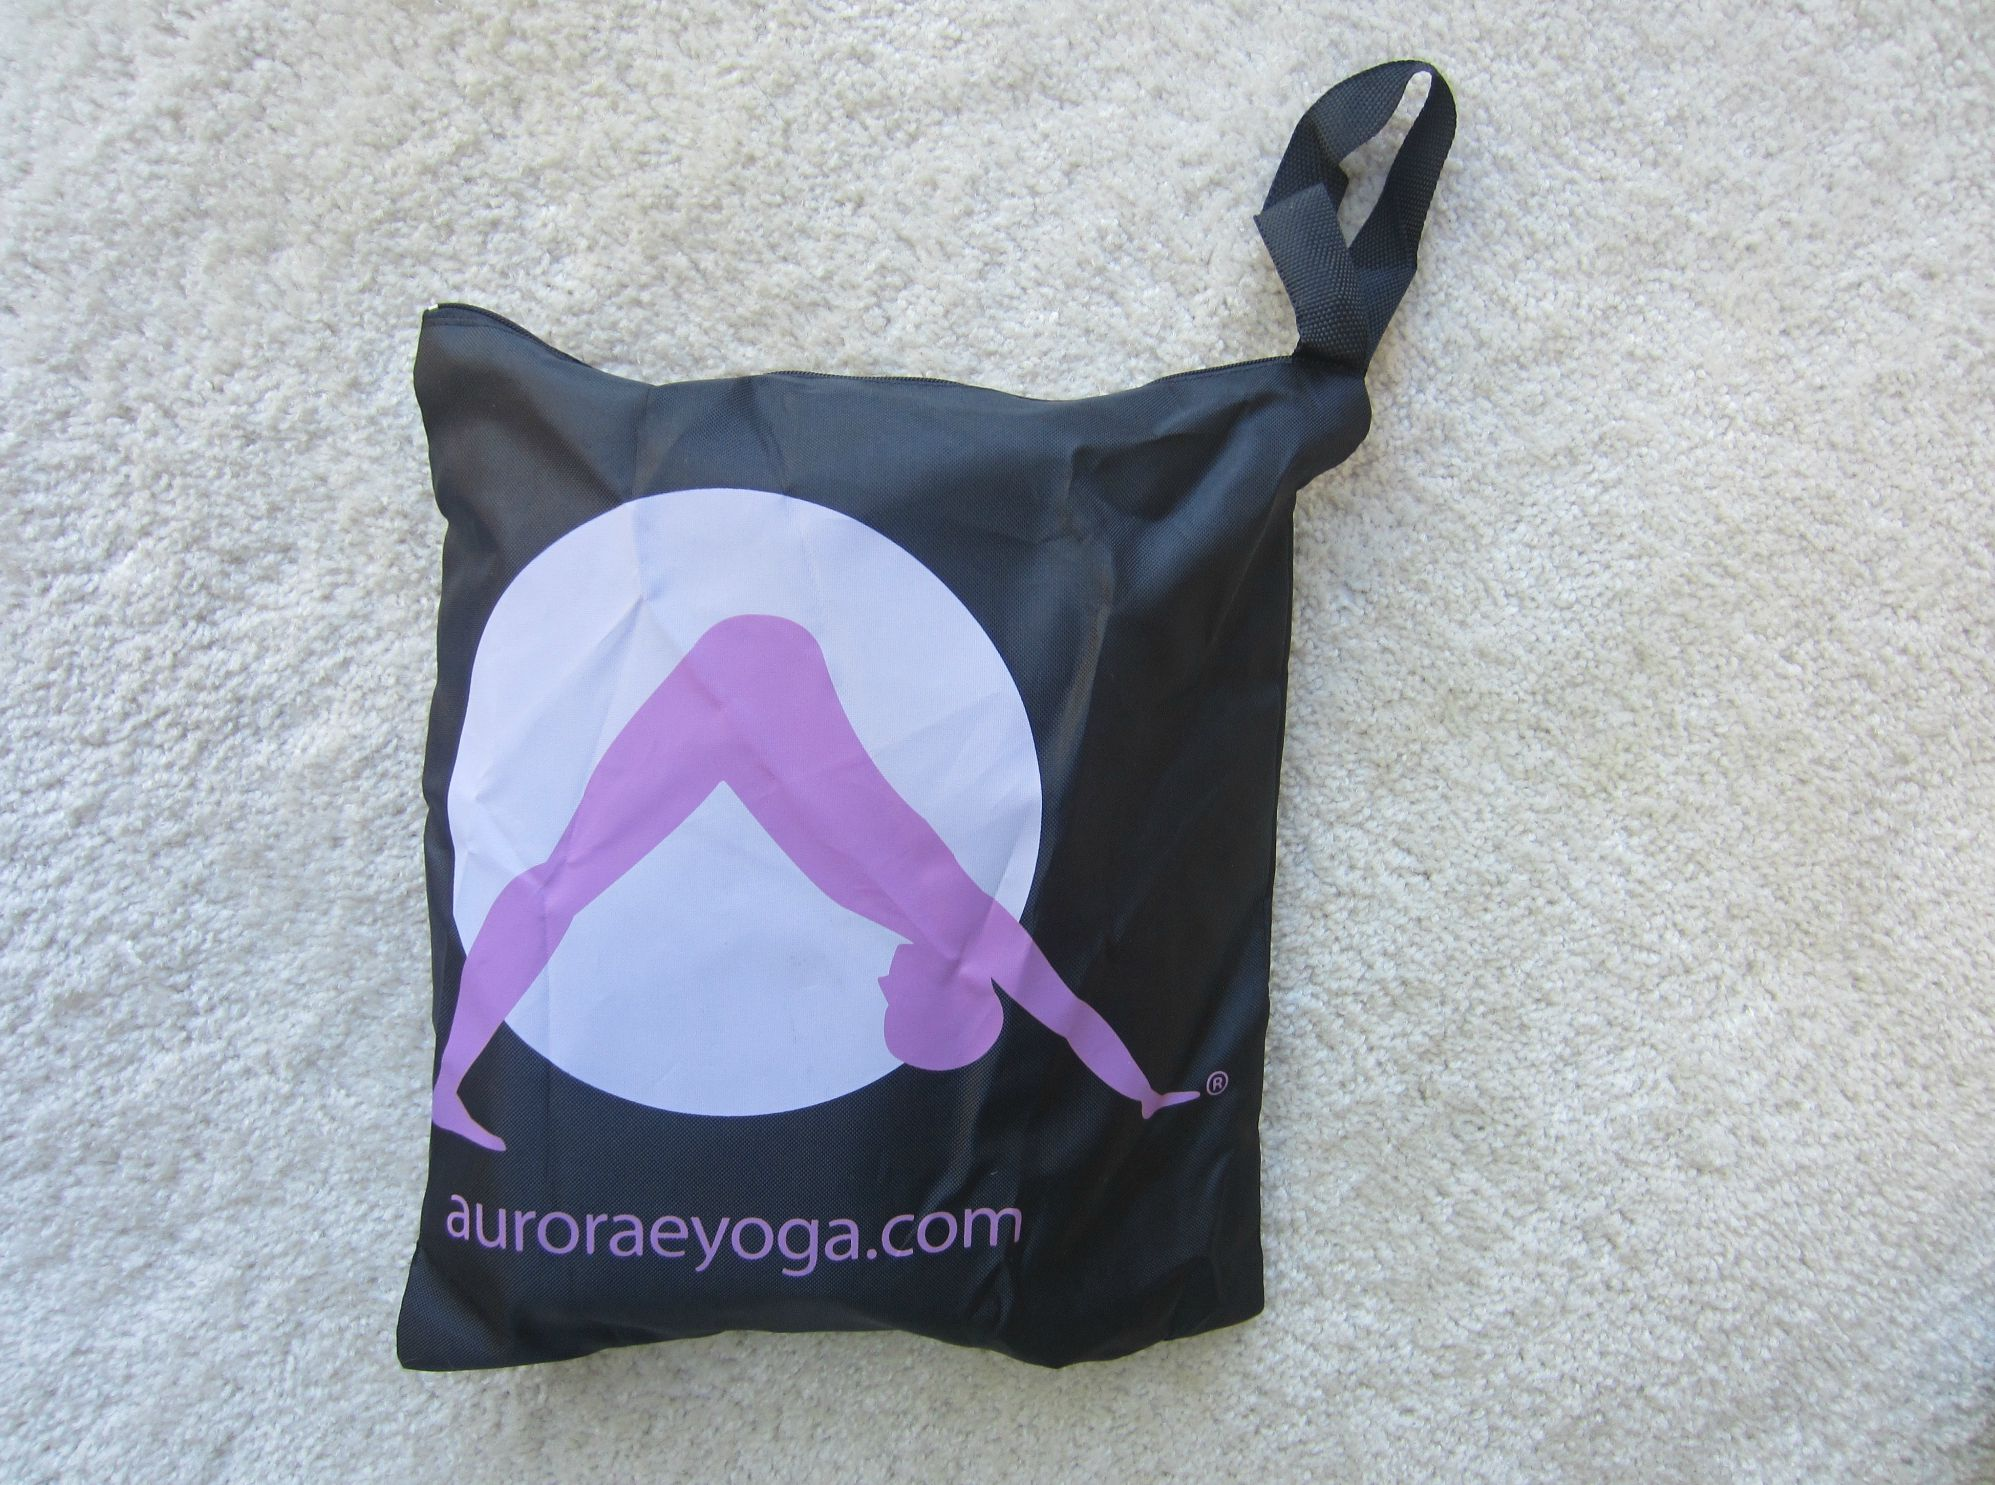 aurorae yoga resistance bands set